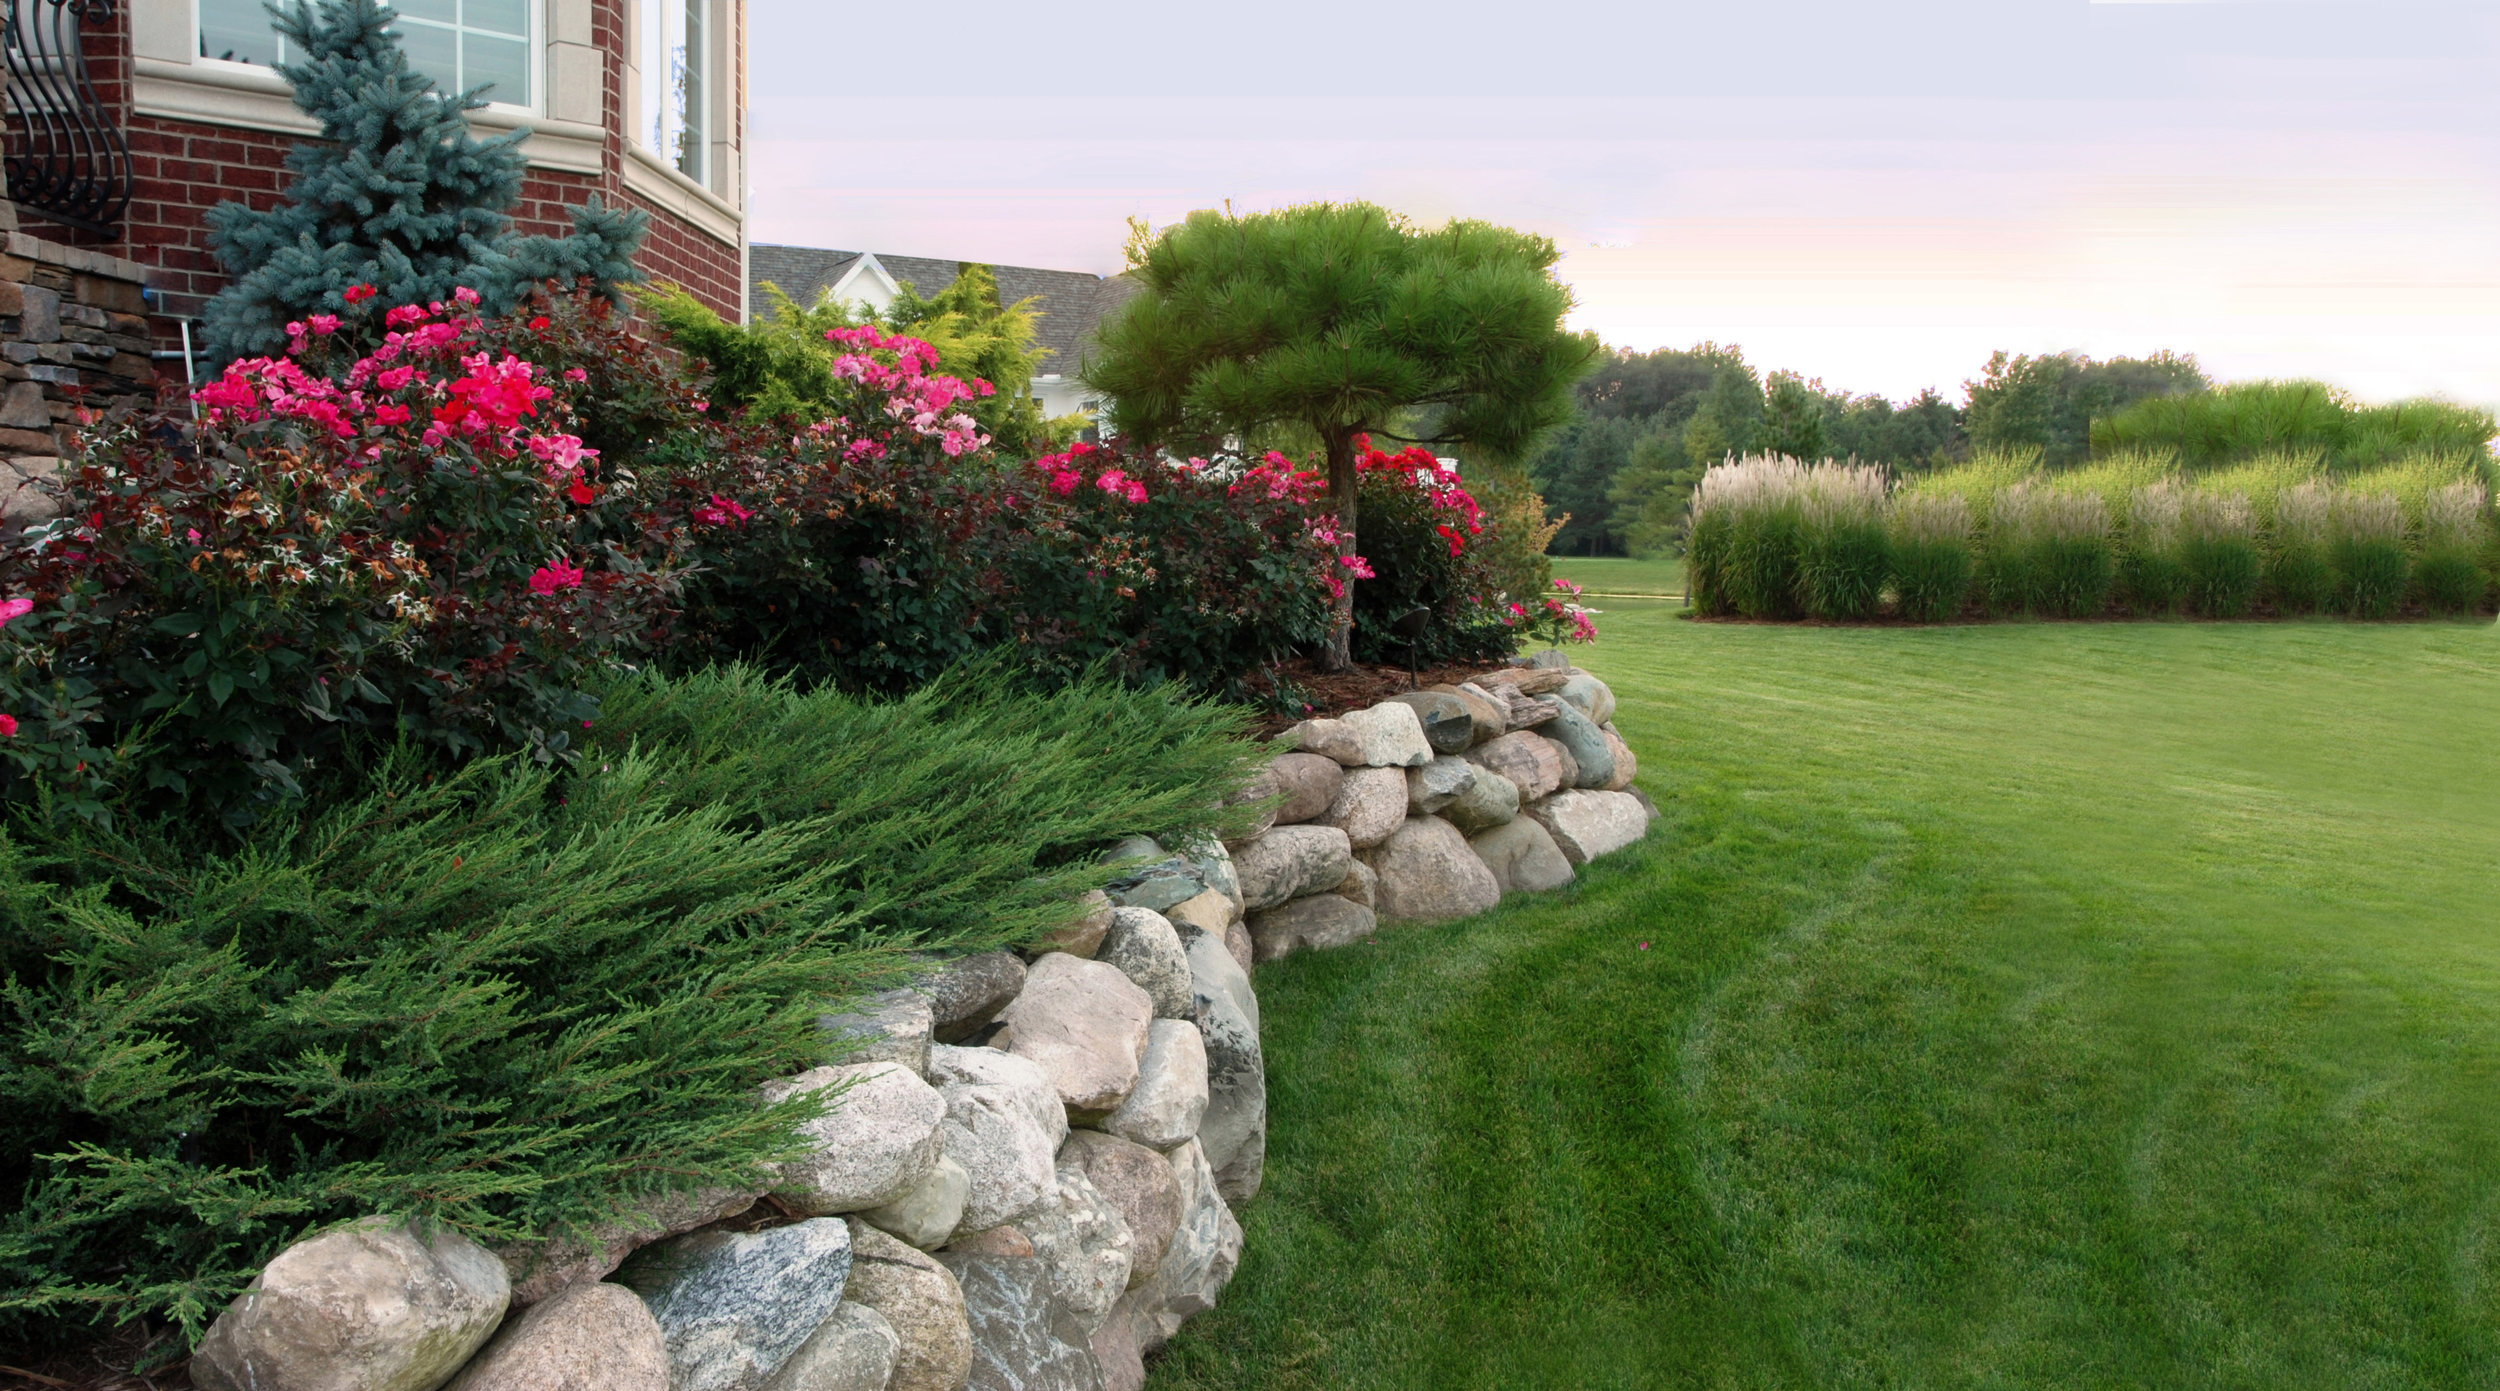 Start planning your landscape. - Contact us for a free consultation & quote for all of your design needs